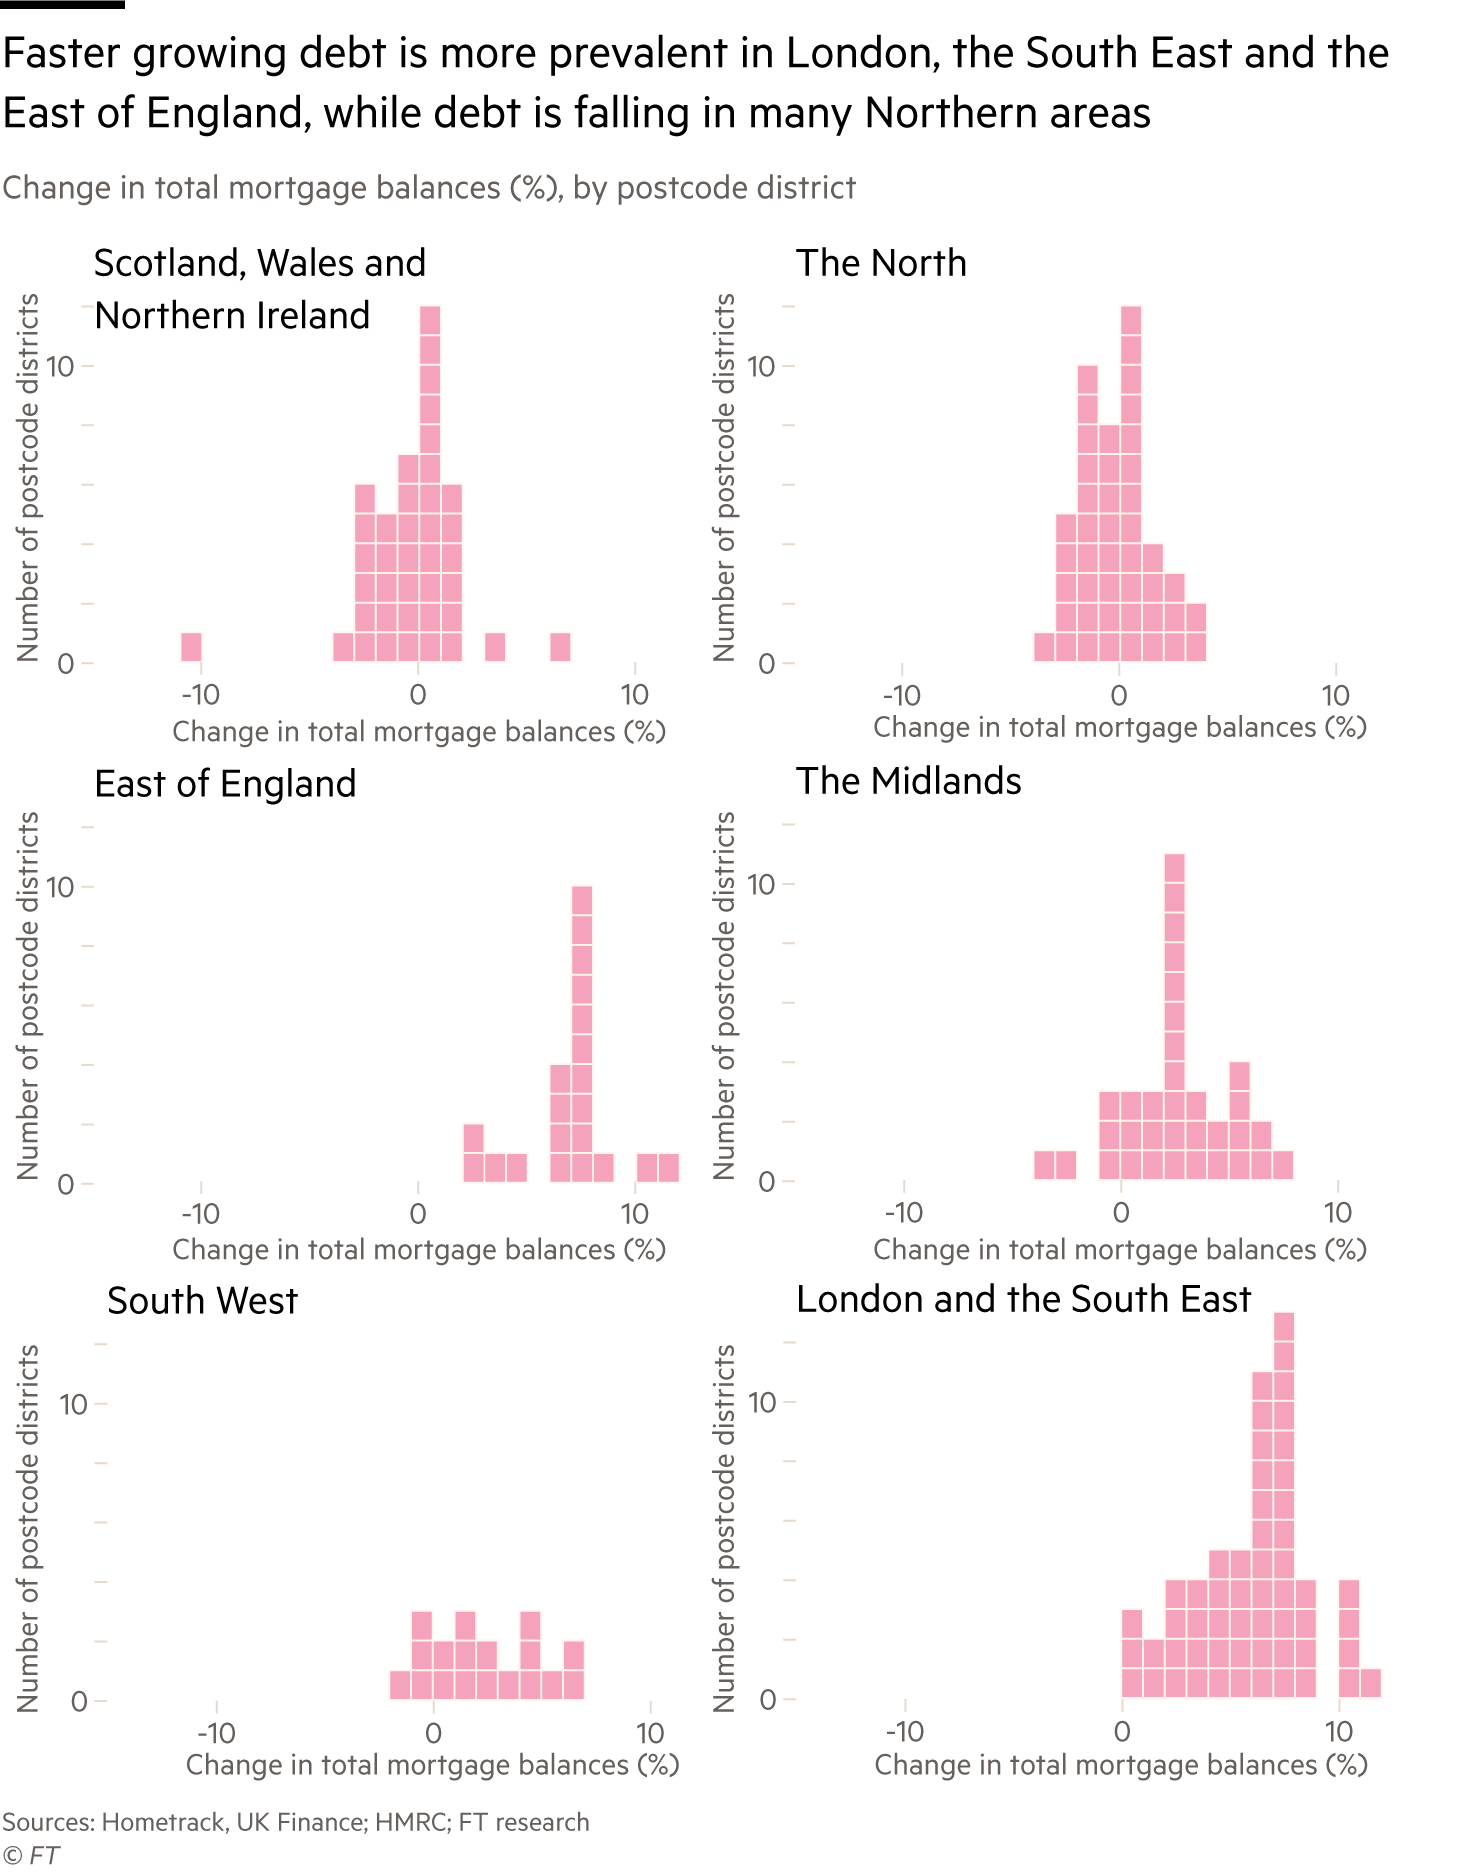 Charts showing regional variations in changes in mortgage debt